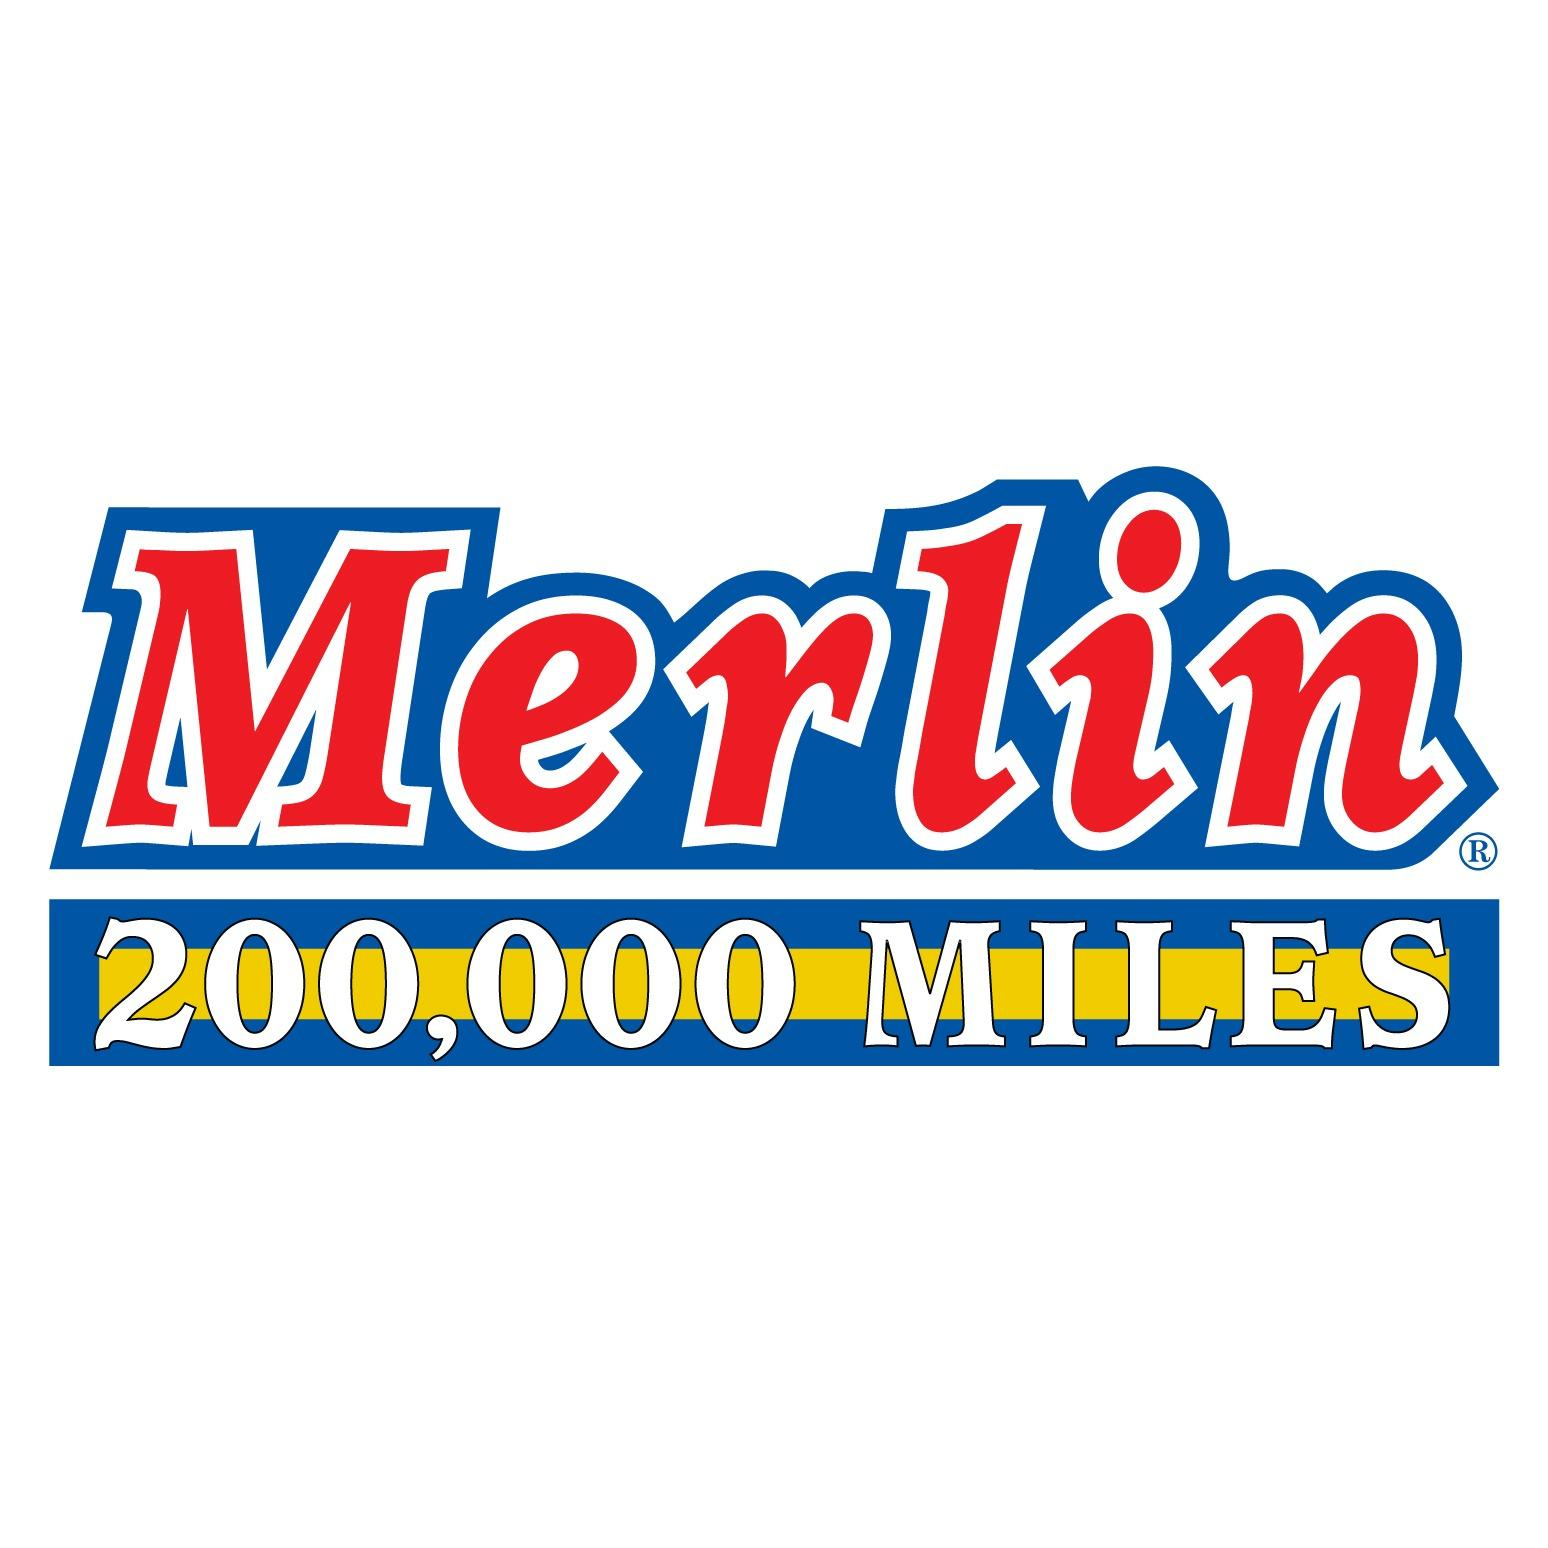 Merlin 200,000 Miles Shop image 0